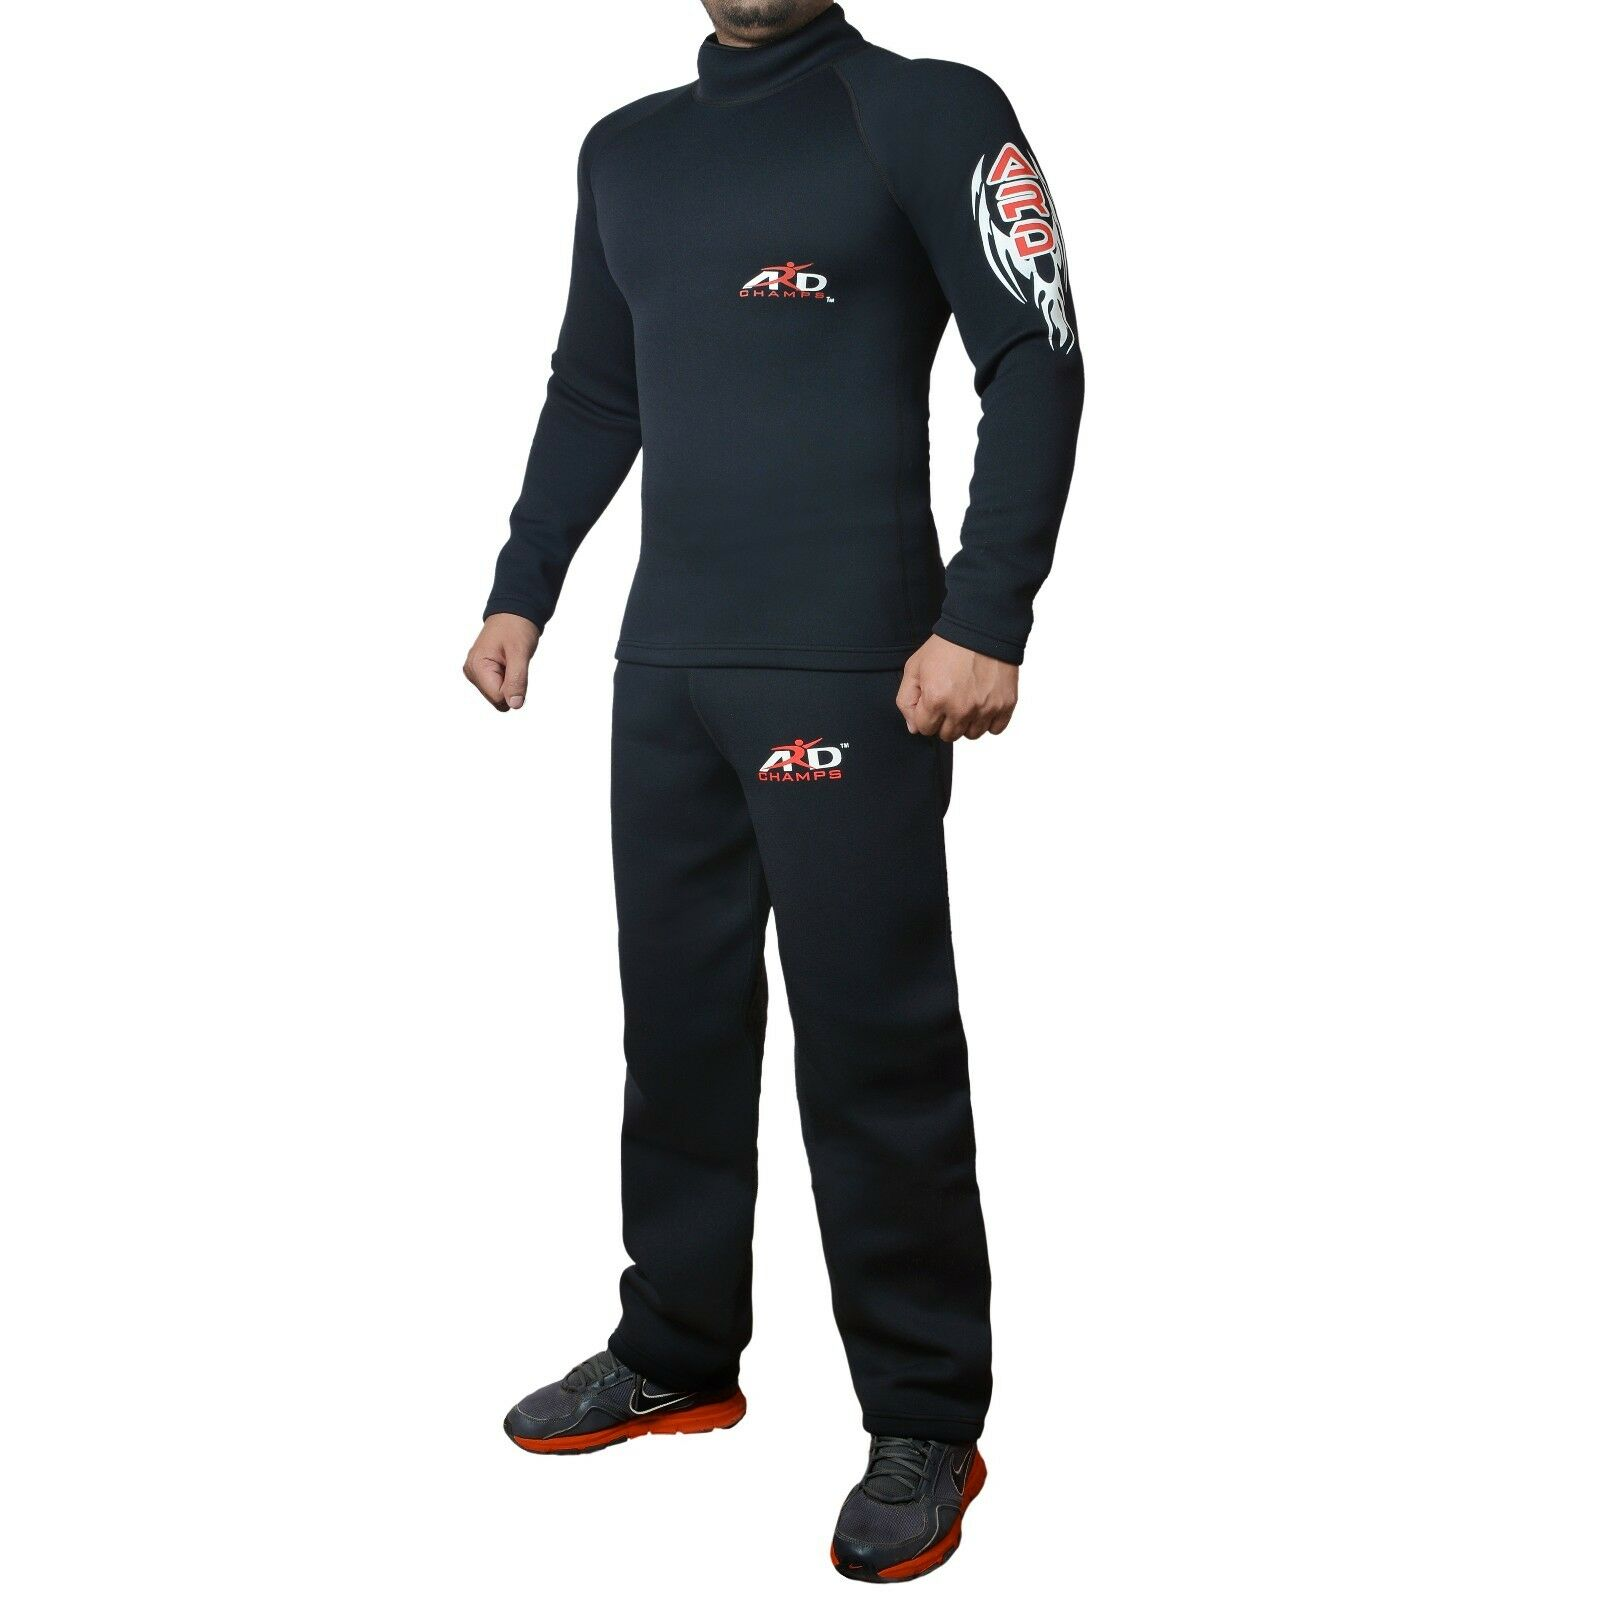 ARD CHAMPS™ Heavy Duty Neoprene Sweat Suit Sauna Exercise Gym Fitness Suit Fitness Gym f55c6e